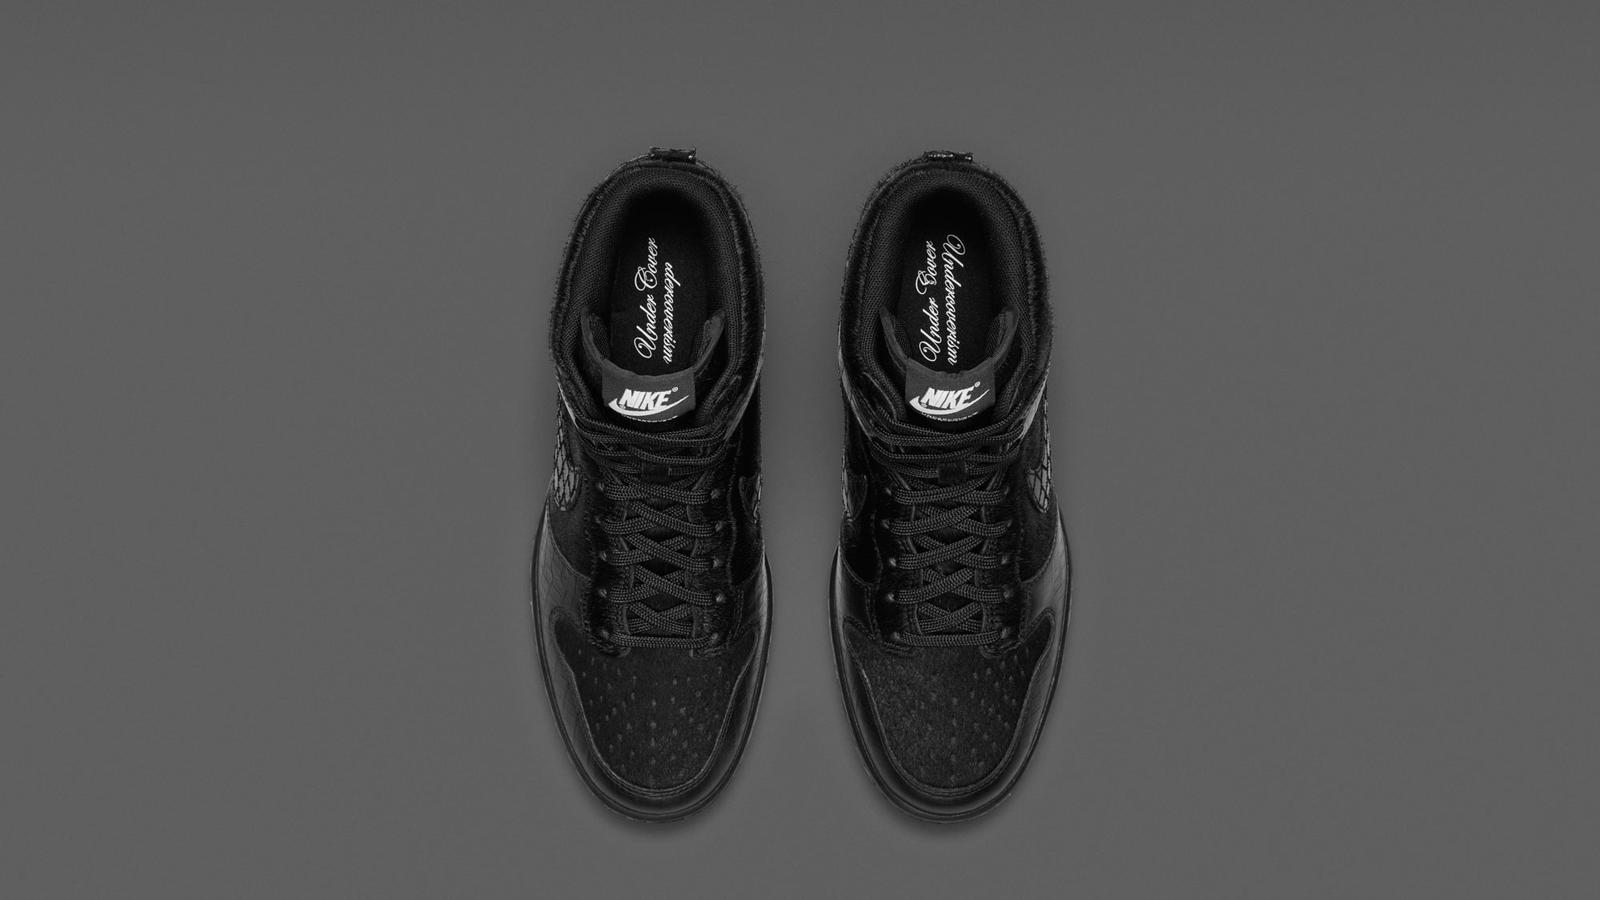 717122_001_Dunk_Sky_Hi_Undercover_Black-Top_Down_Pair-HO14_B6_APP-13066